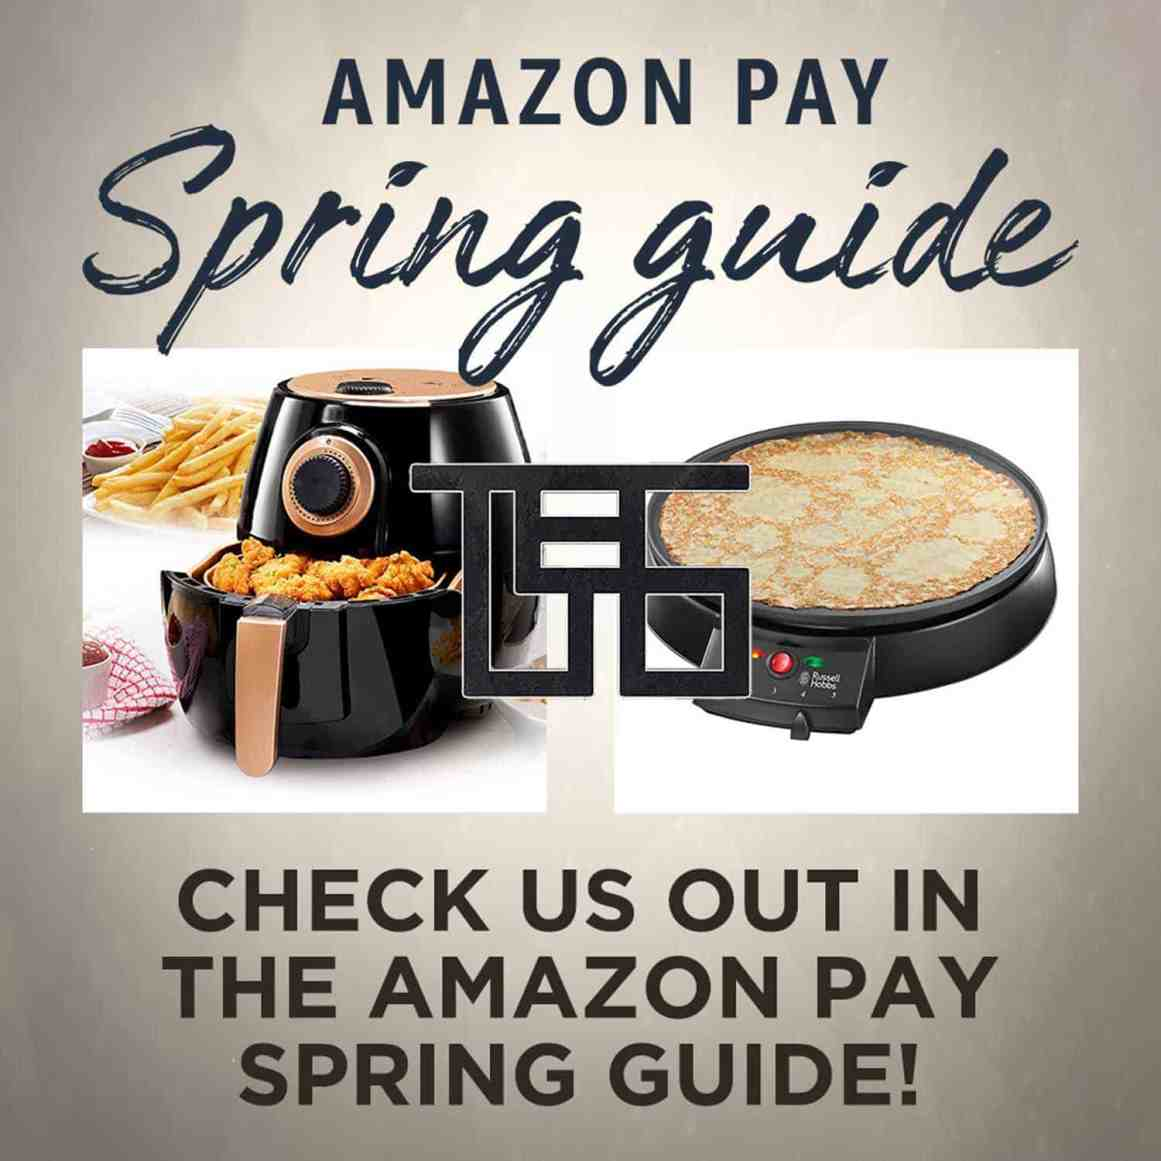 Amazon Pay Spring Guide 2021